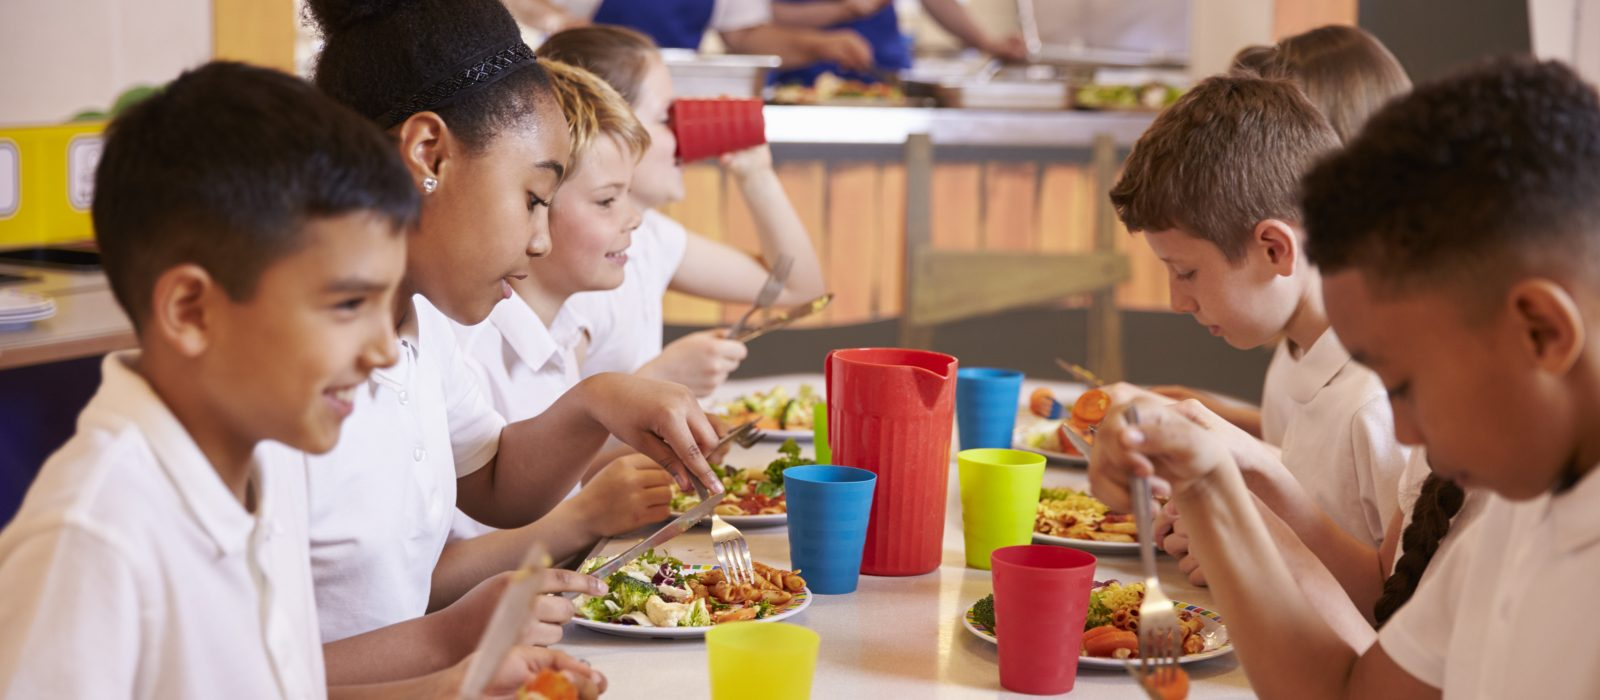 Image of primary school children eating lunch together at a table